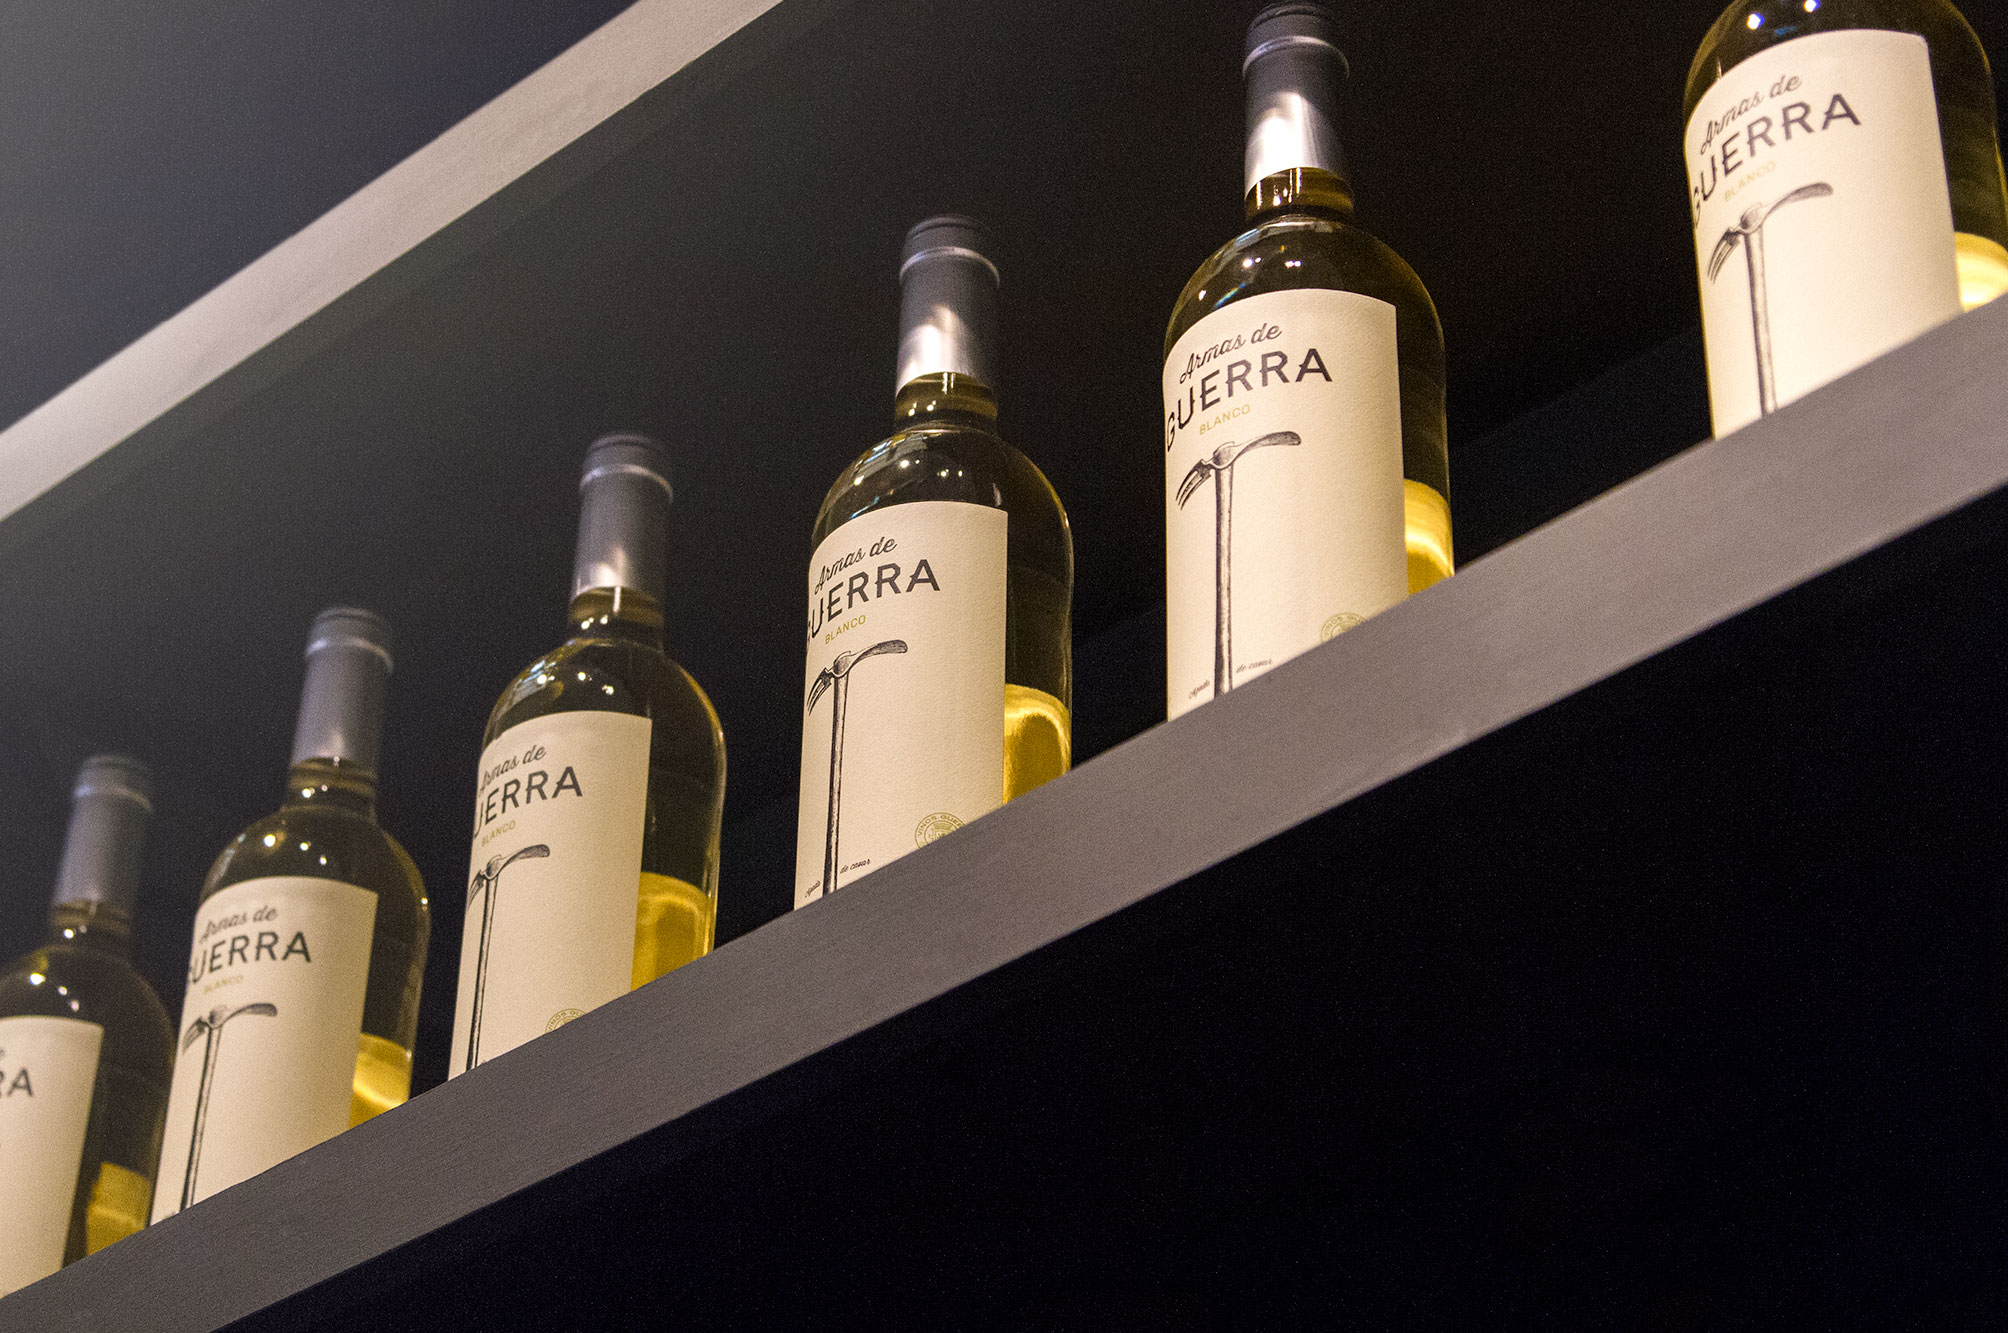 The Great British Wine On Shelf